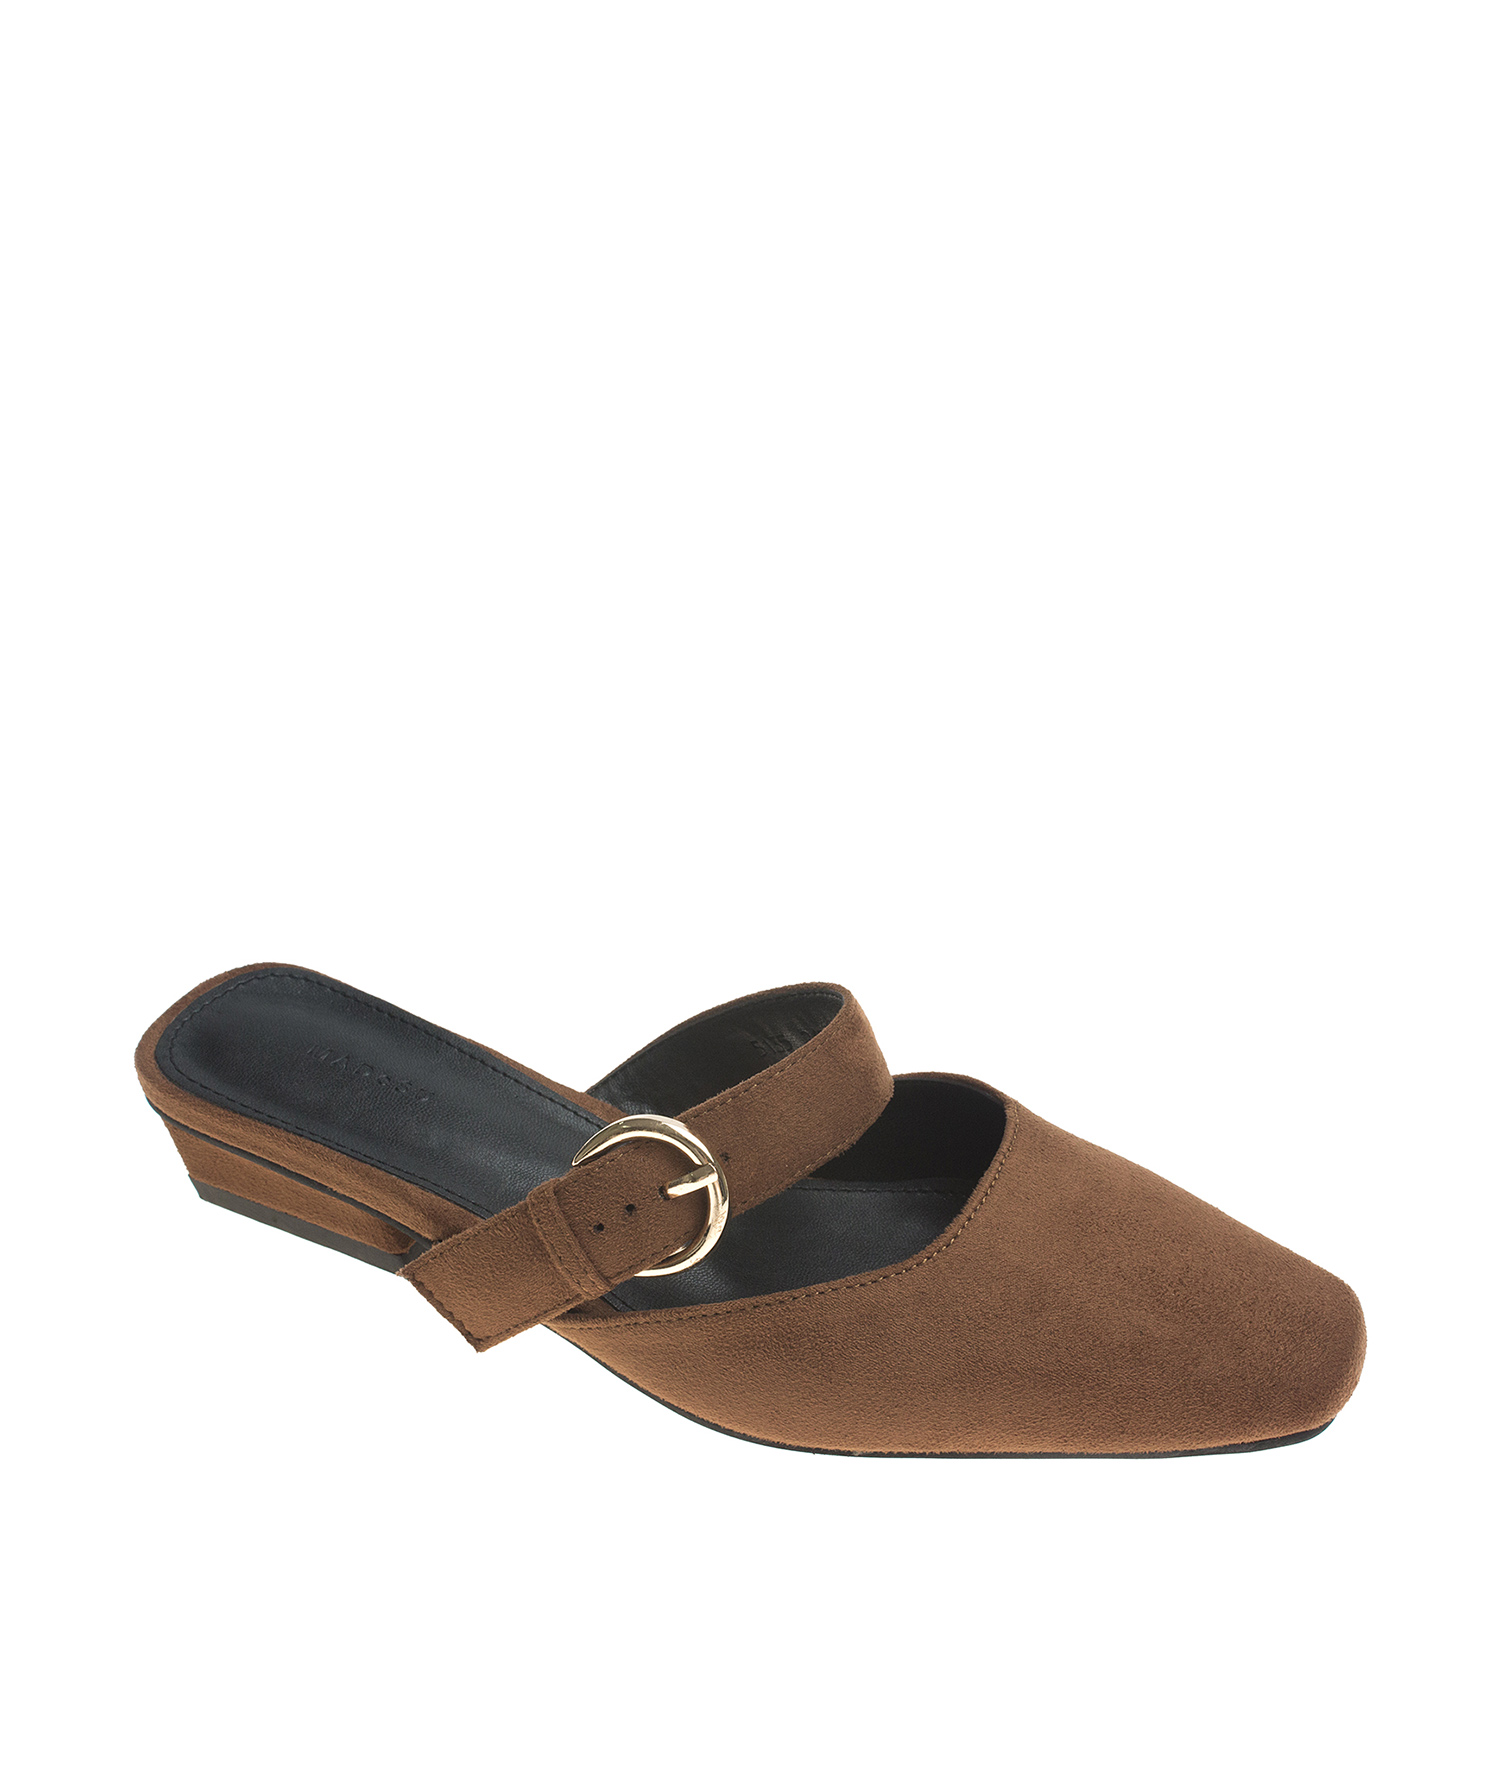 ca1b6db8996a AnnaKastle Womens Mary Jane Suede Mule Flats Brown